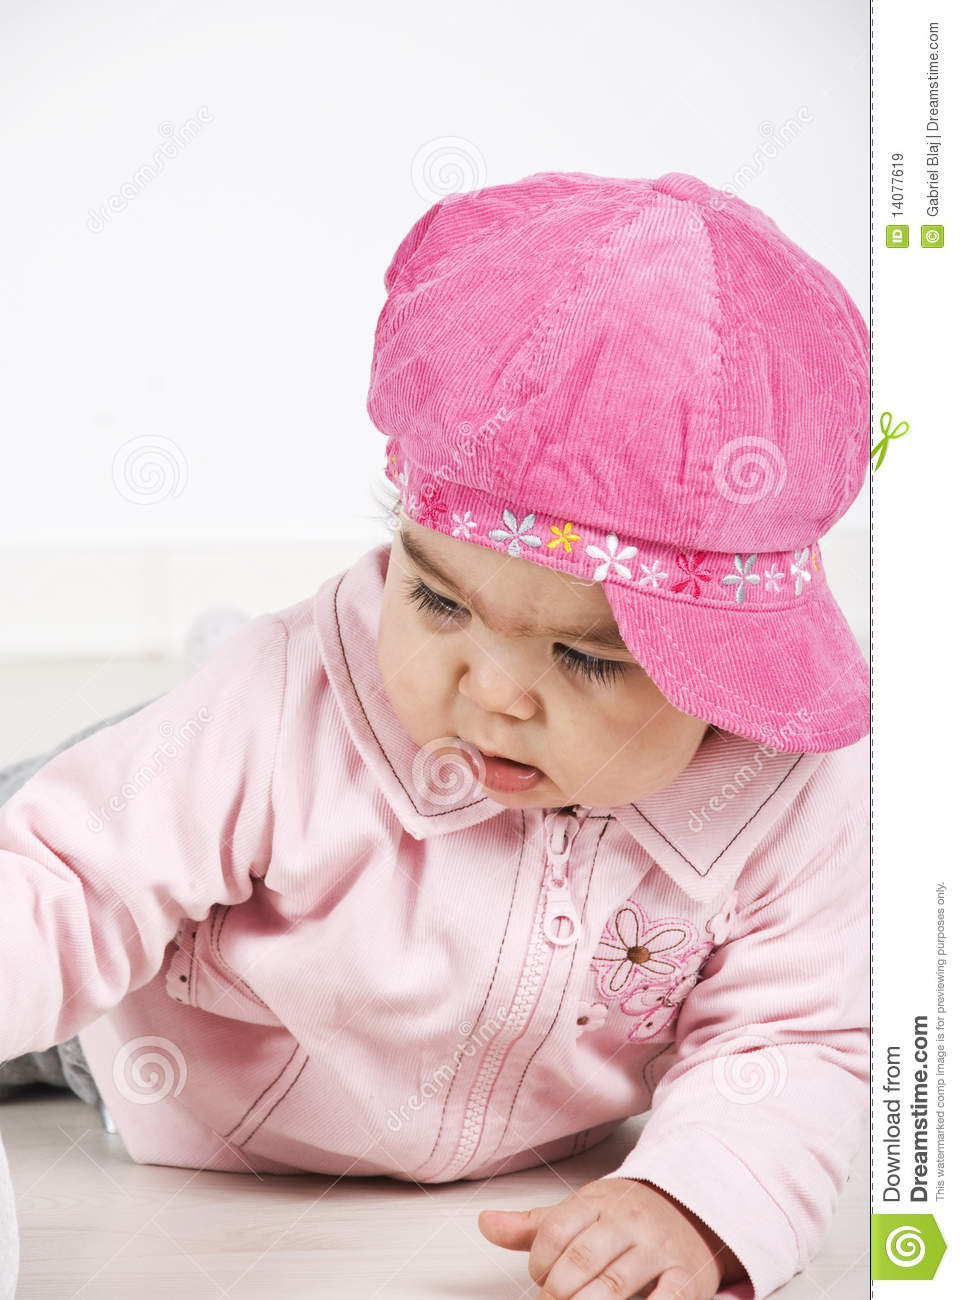 Baby girl with pink cap lying down